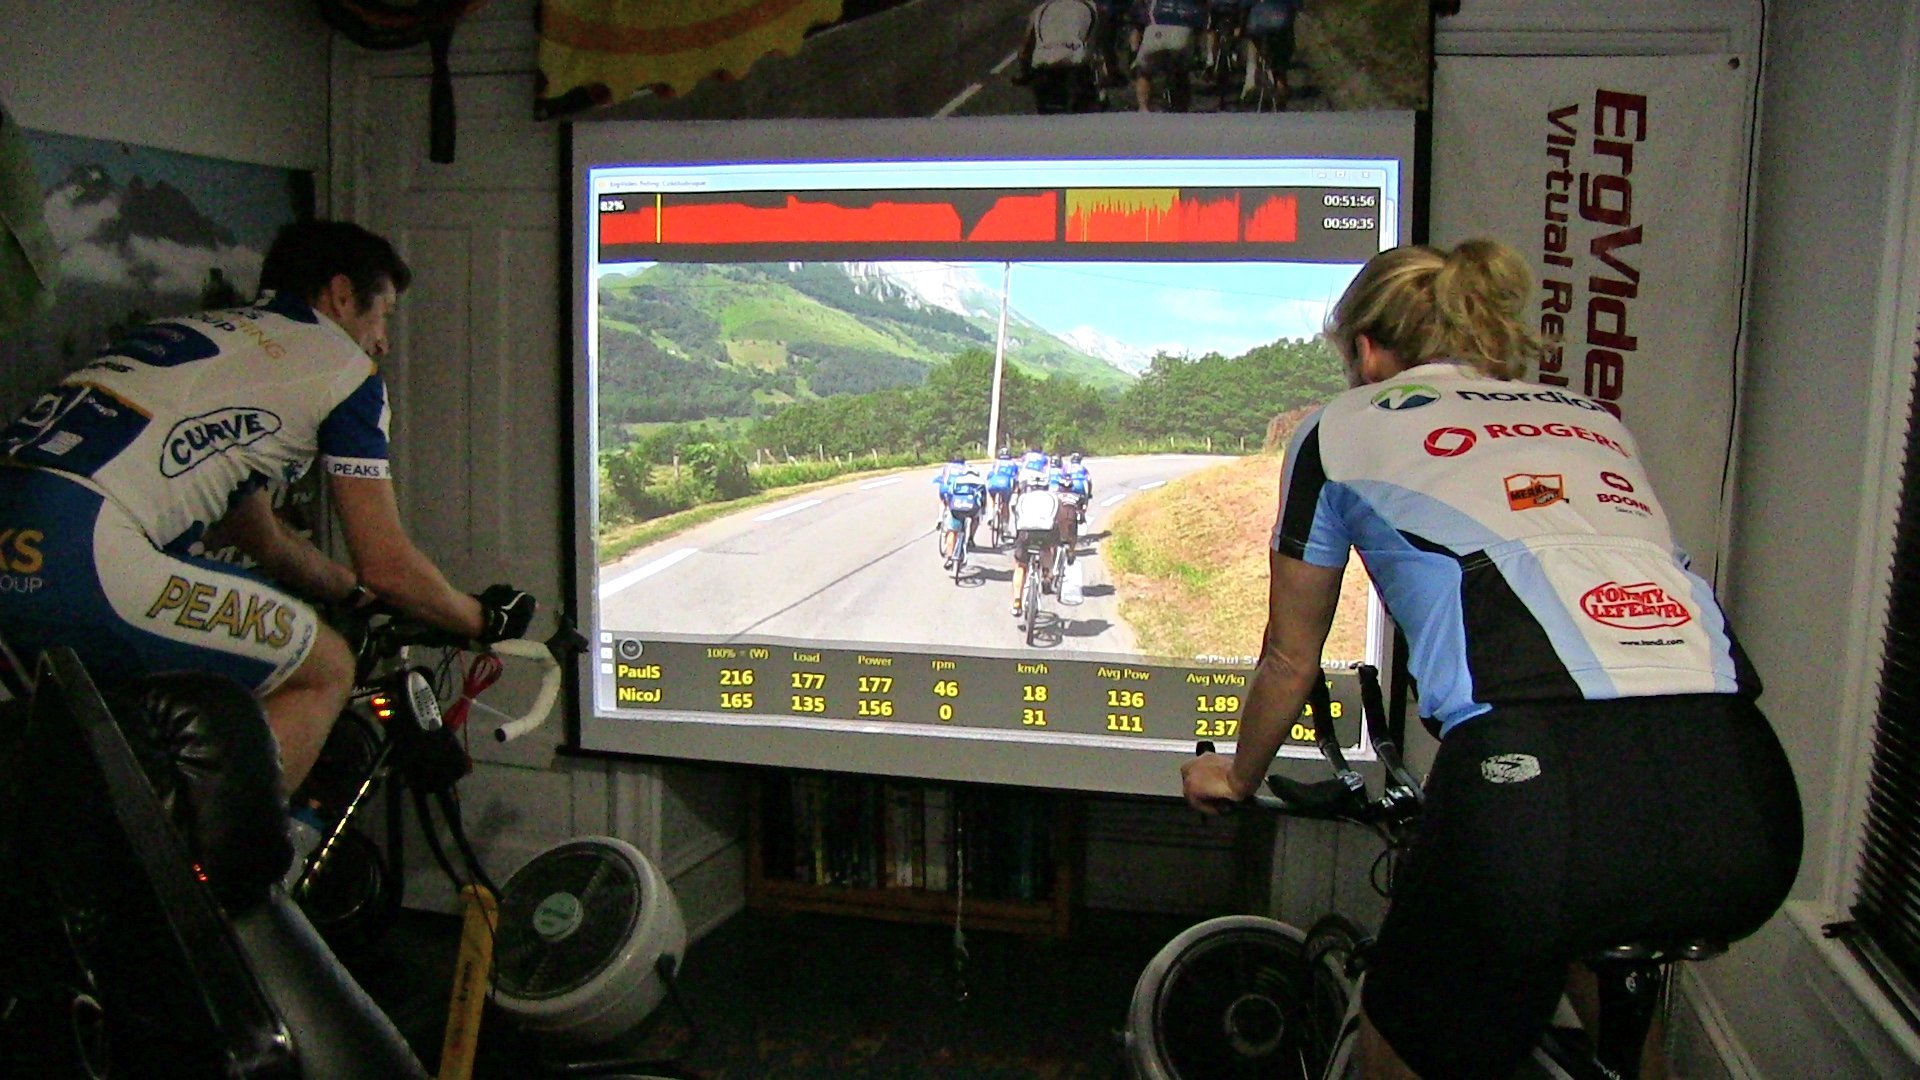 two cyclists riding indoors with ErgVideo